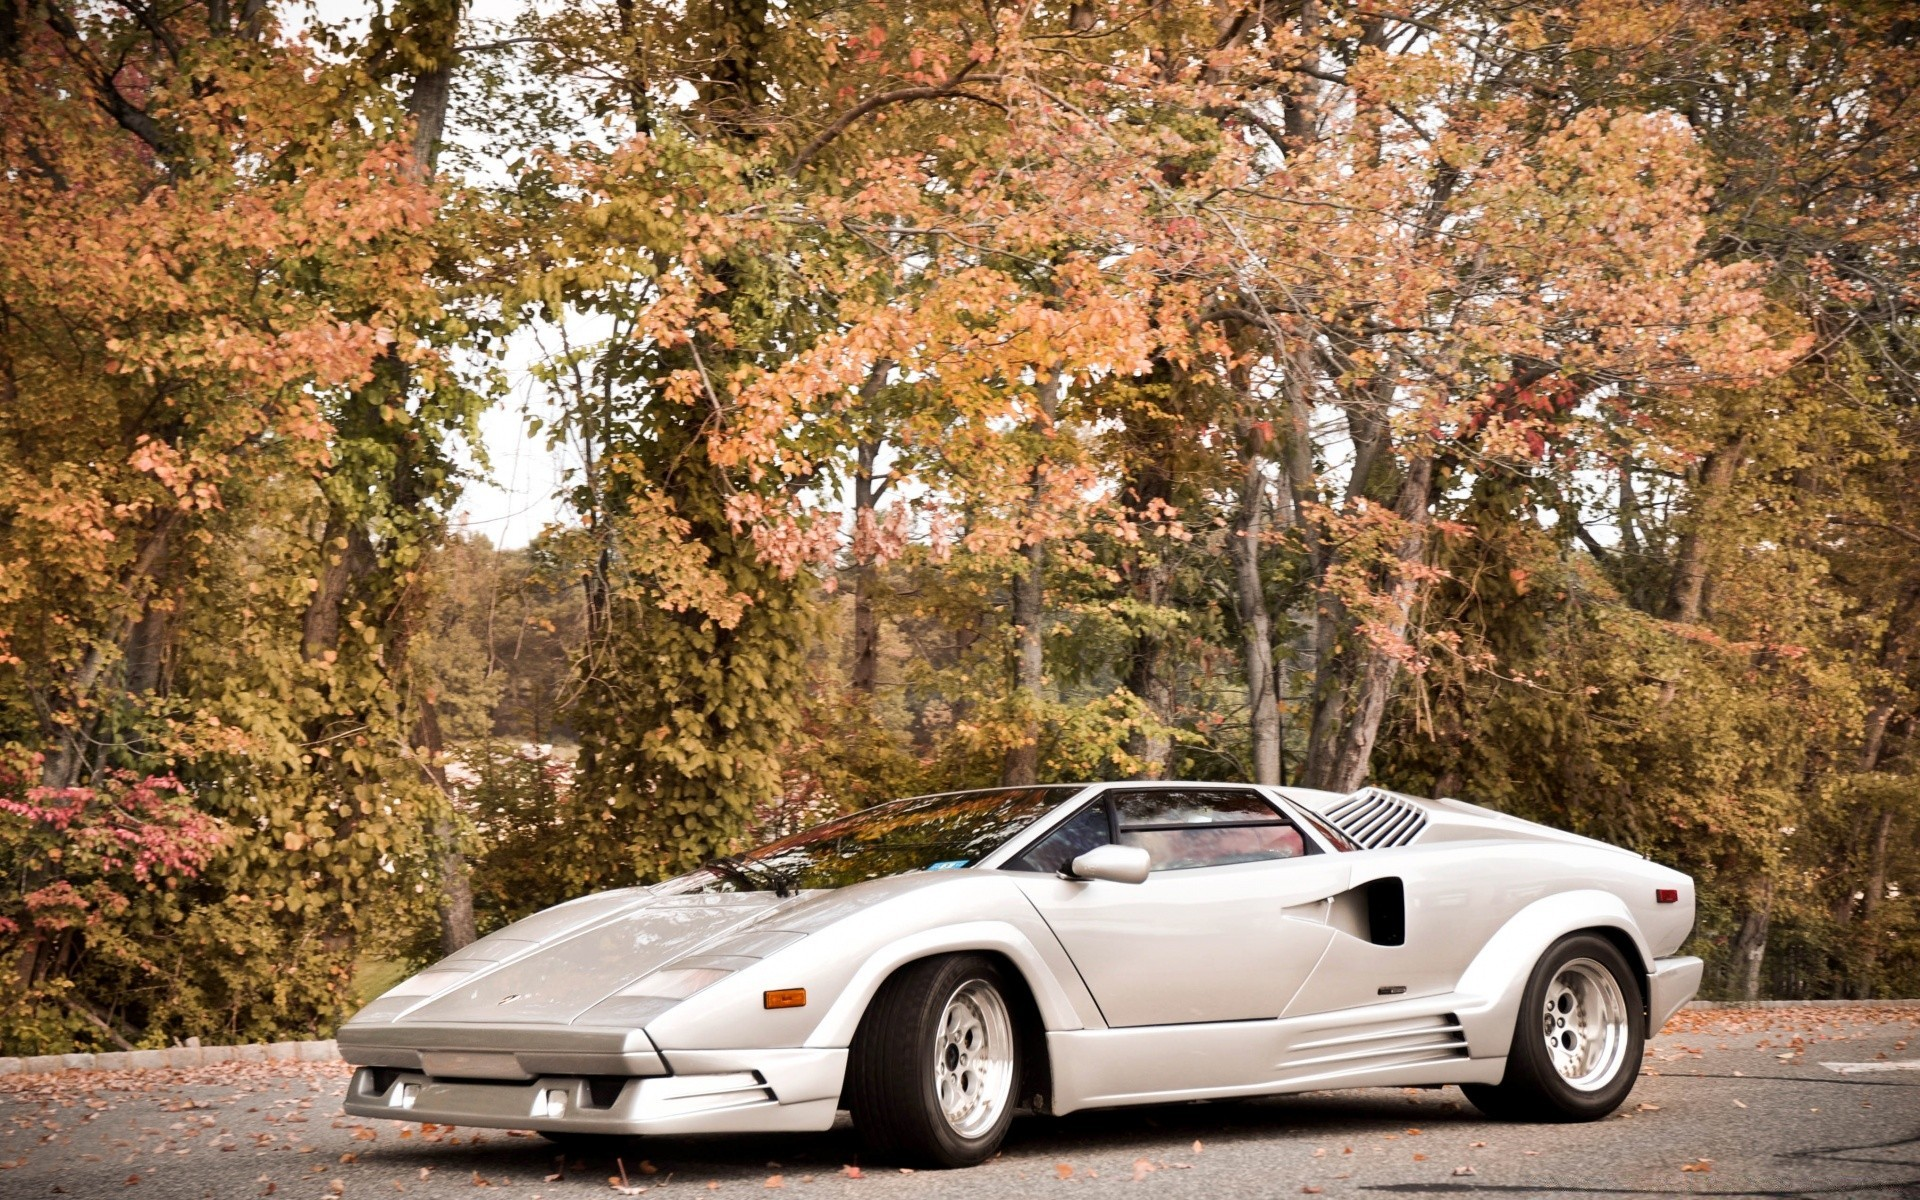 Lamborghini Countach Iphone Wallpapers For Free